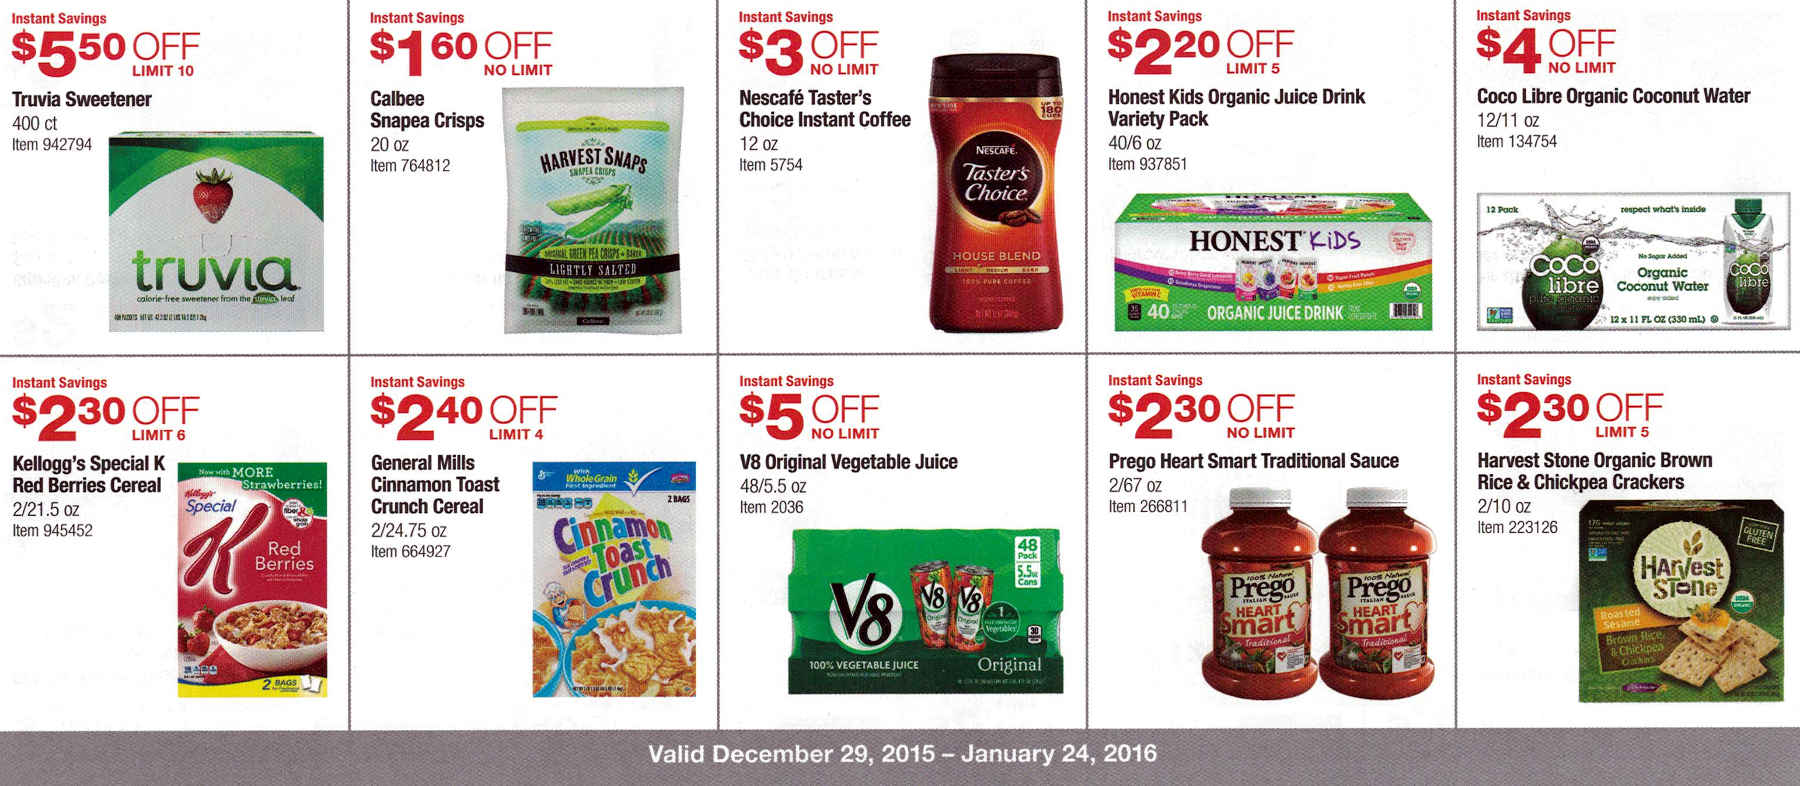 January 2016 Costco Coupon Book Page 11